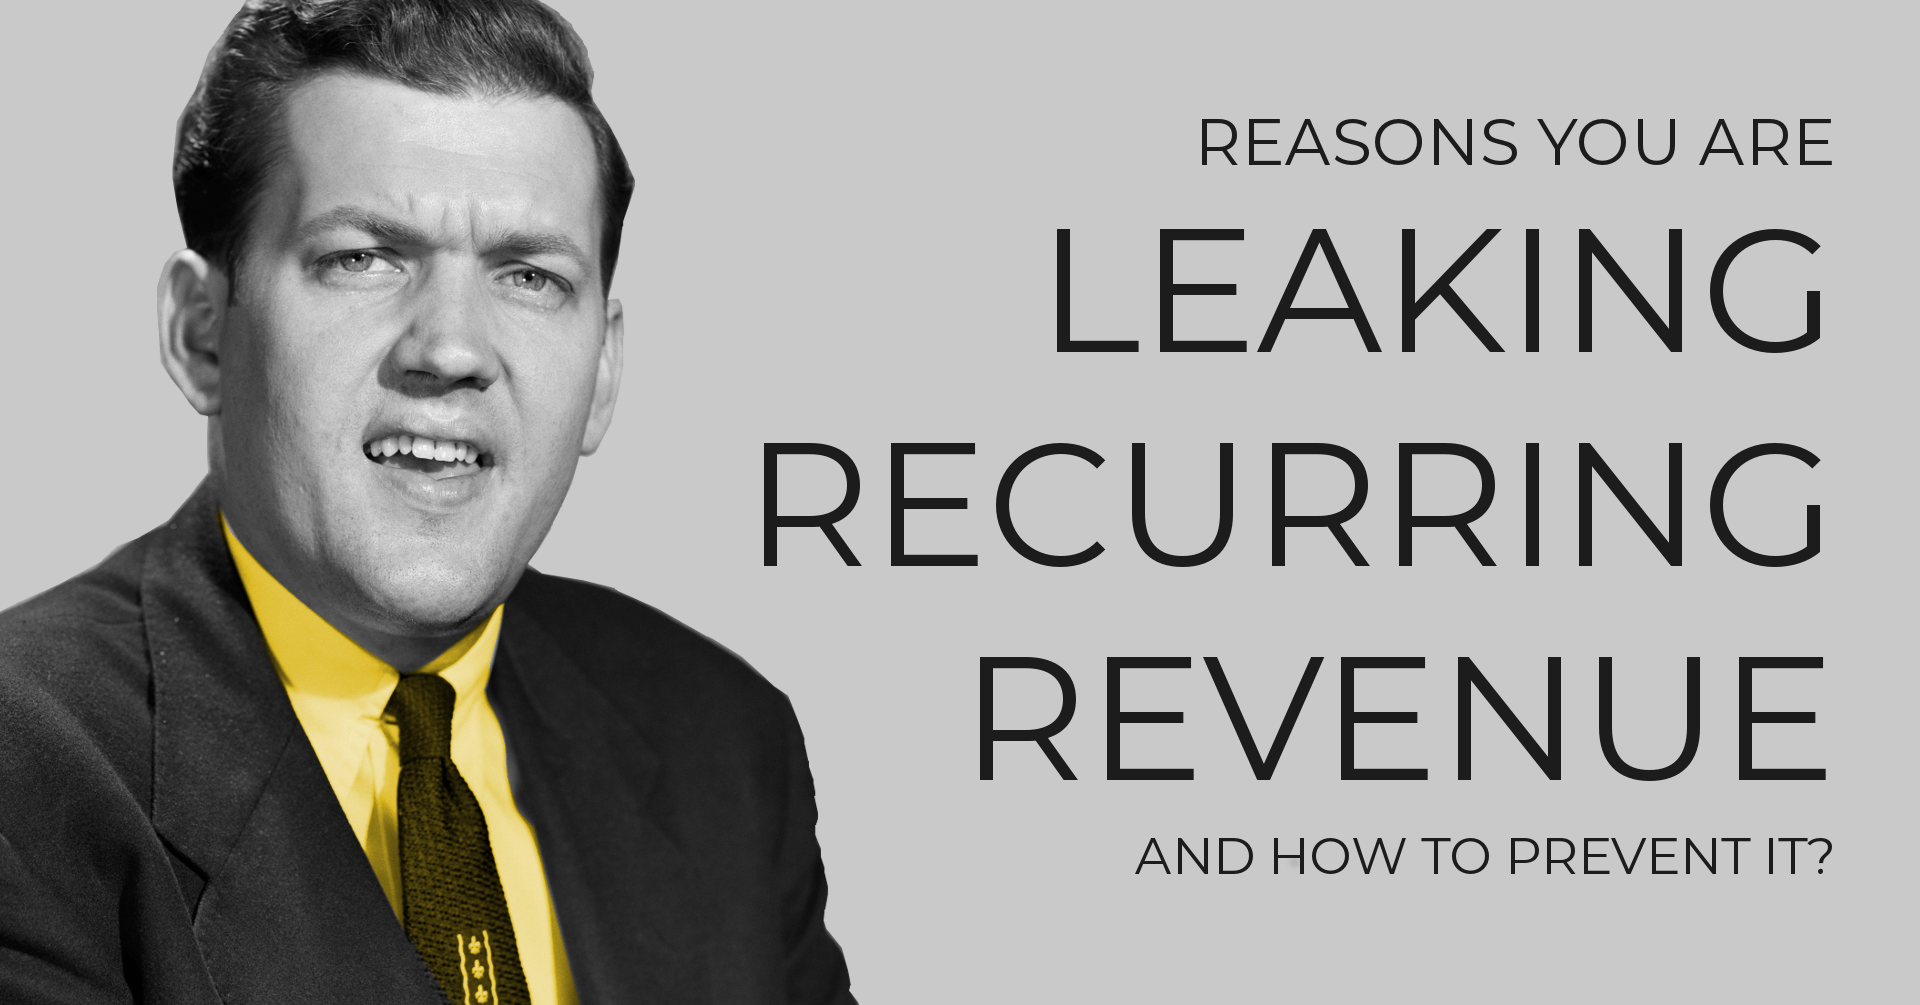 Reasons You are Leaking Recurring Revenue and How to Prevent it